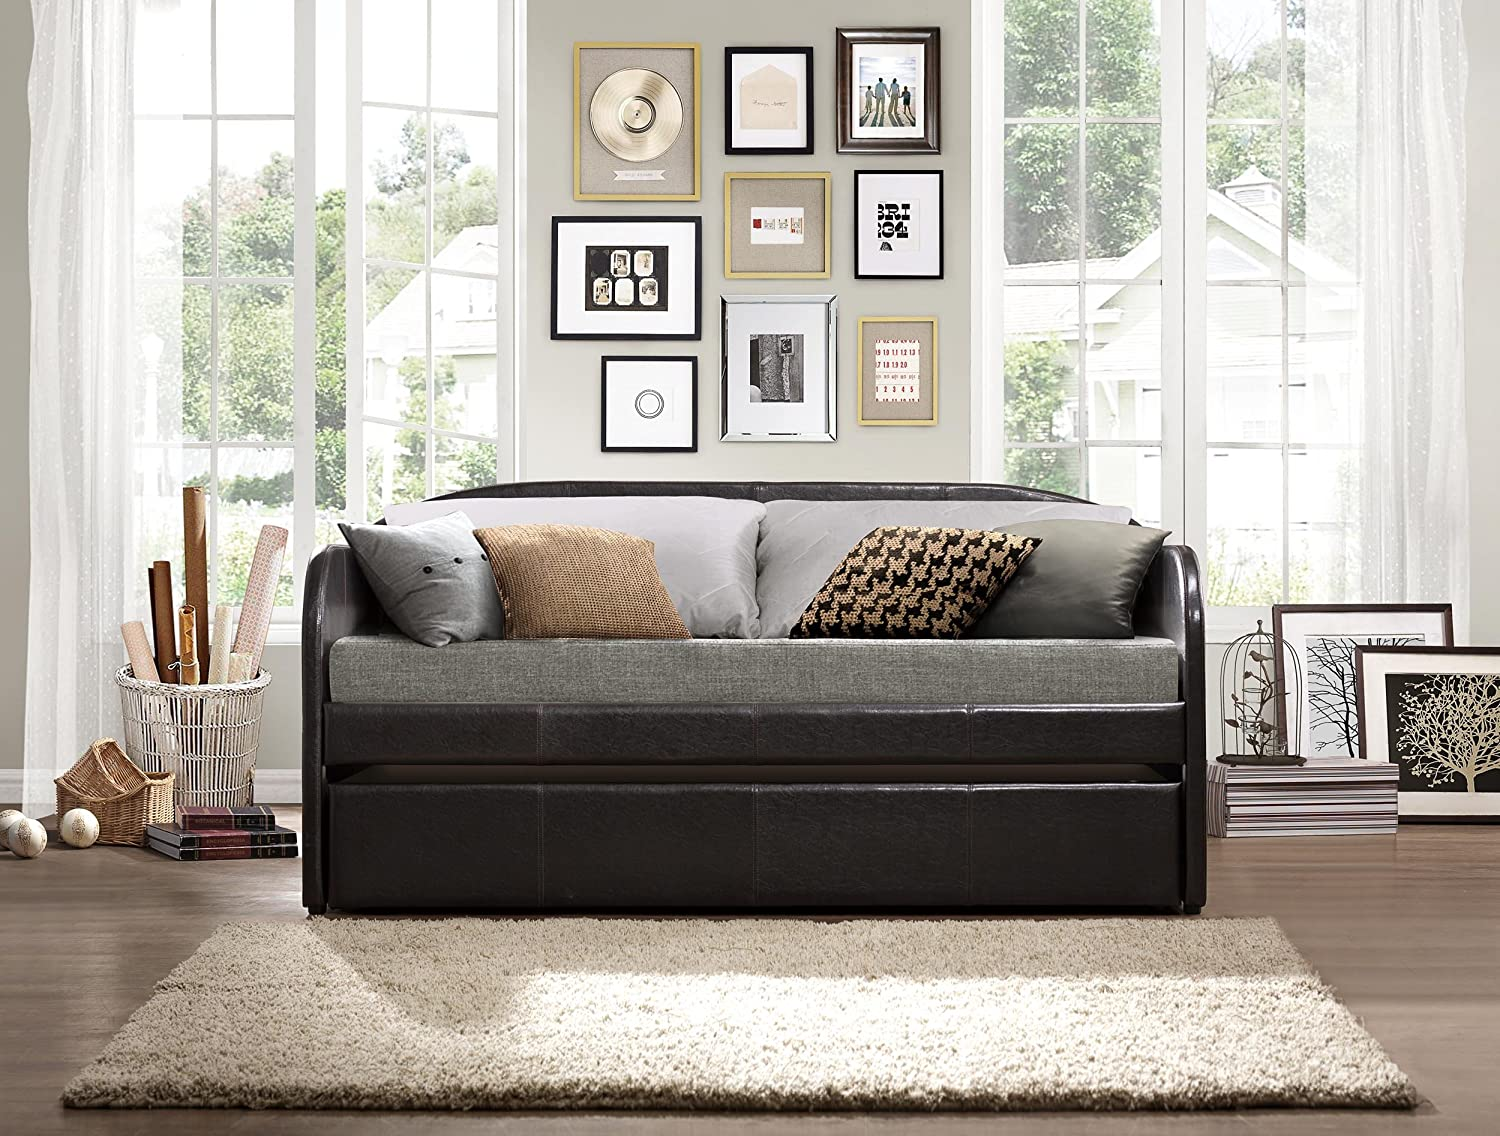 daybed with trundle. Amazon.com: Homelegance 4950 Daybed With Trundle, Dark Brown Bi-Cast Vinyl: Kitchen \u0026 Dining Trundle